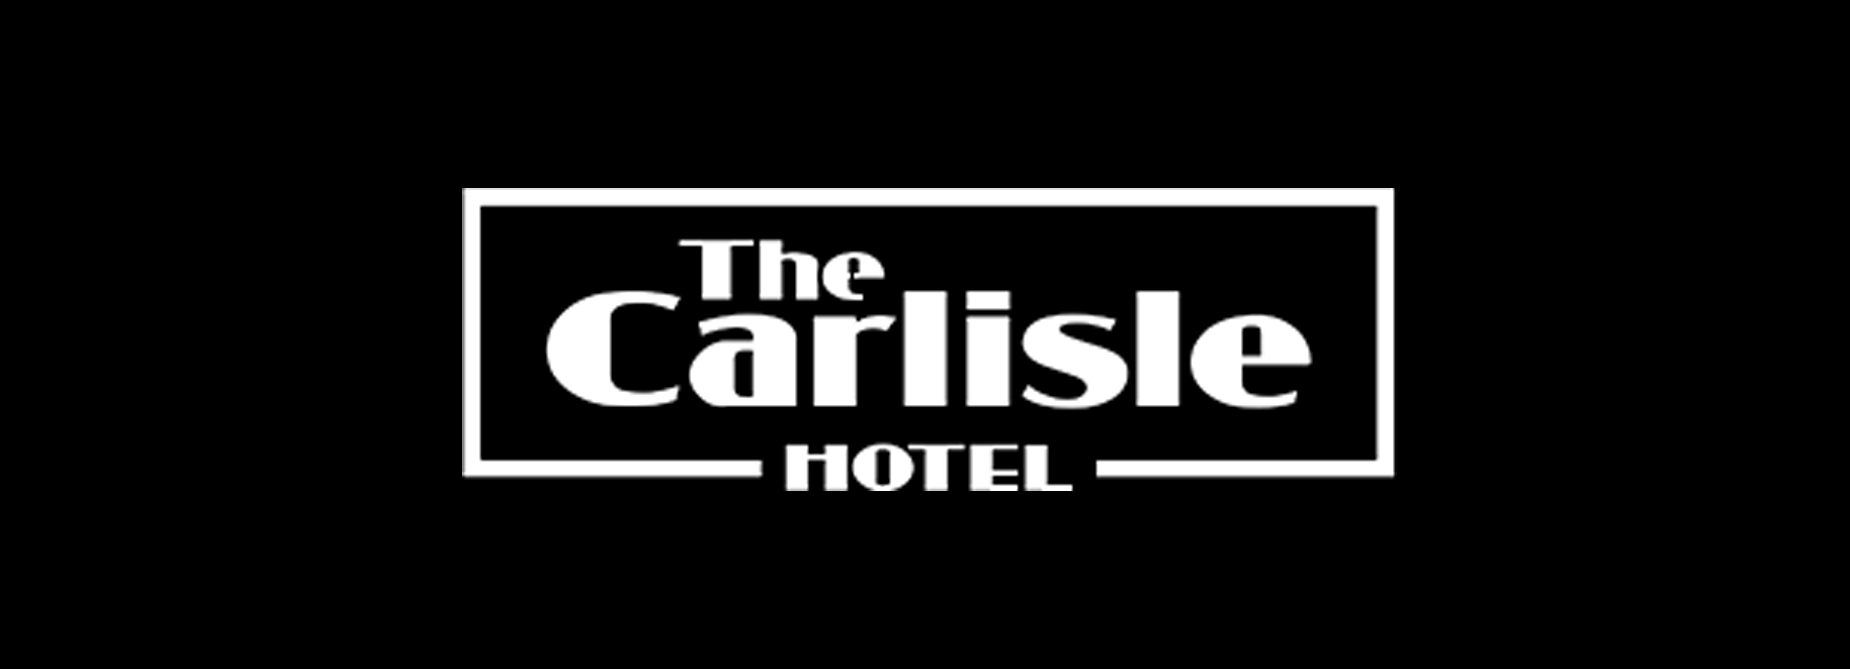 The Carlisle Hotel Logo